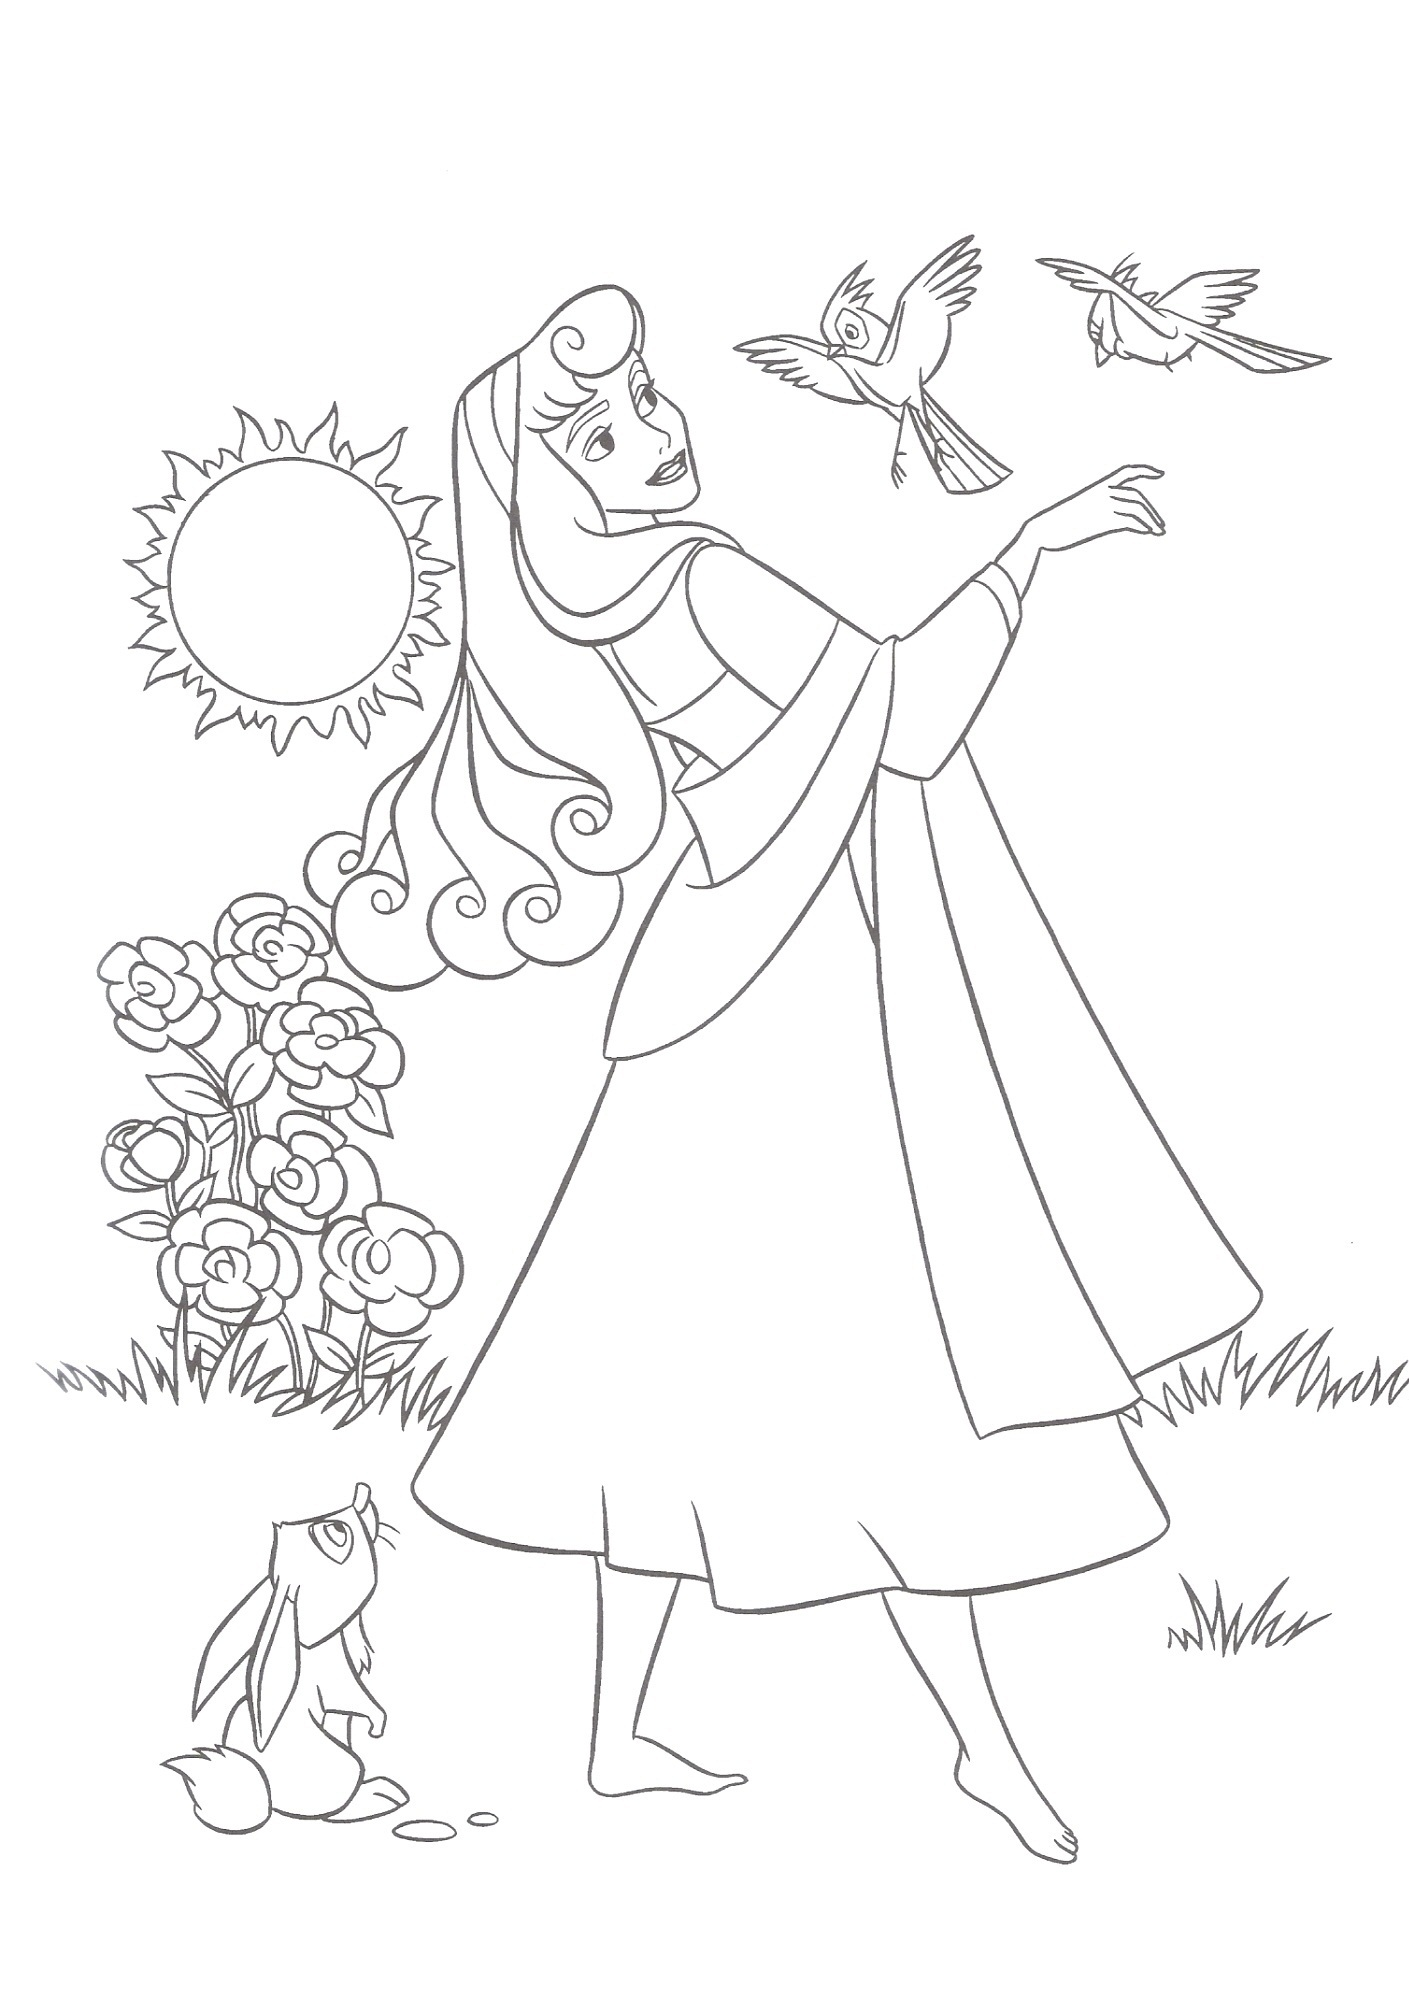 Free Printable Sleeping Beauty Coloring Pages For Kids Disney Princess Coloring Pages Sleeping